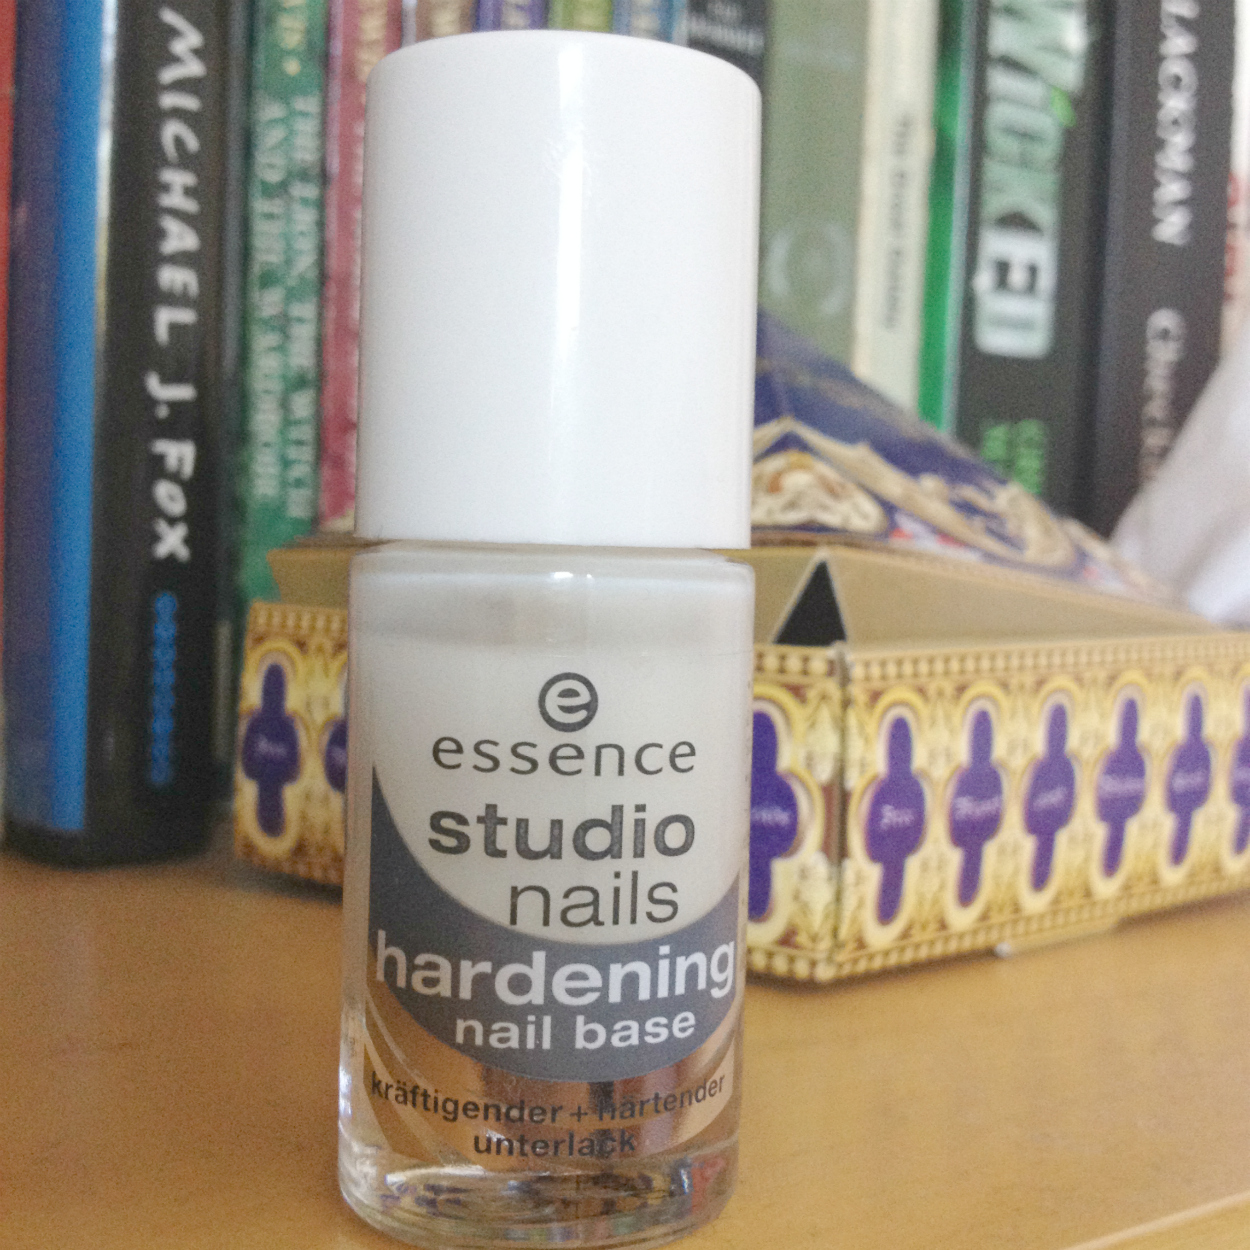 one frank female: Review | Essence Studio Nails Hardening Nail Base